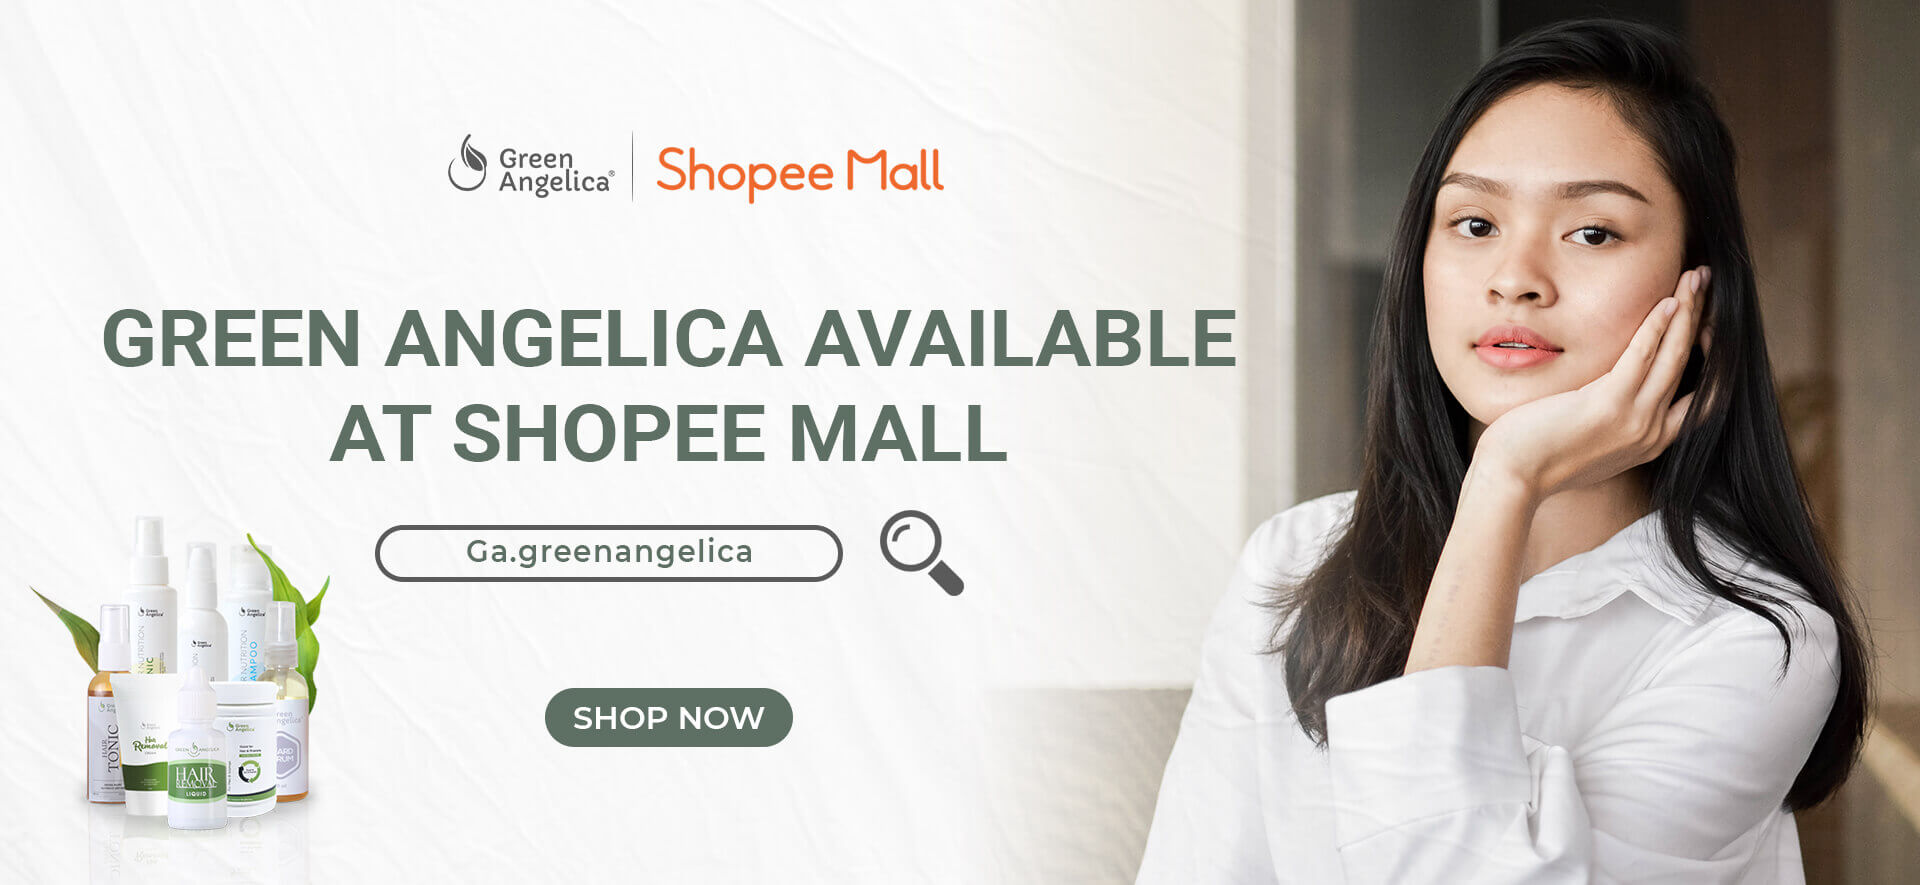 Shopee Mall Green Angelica